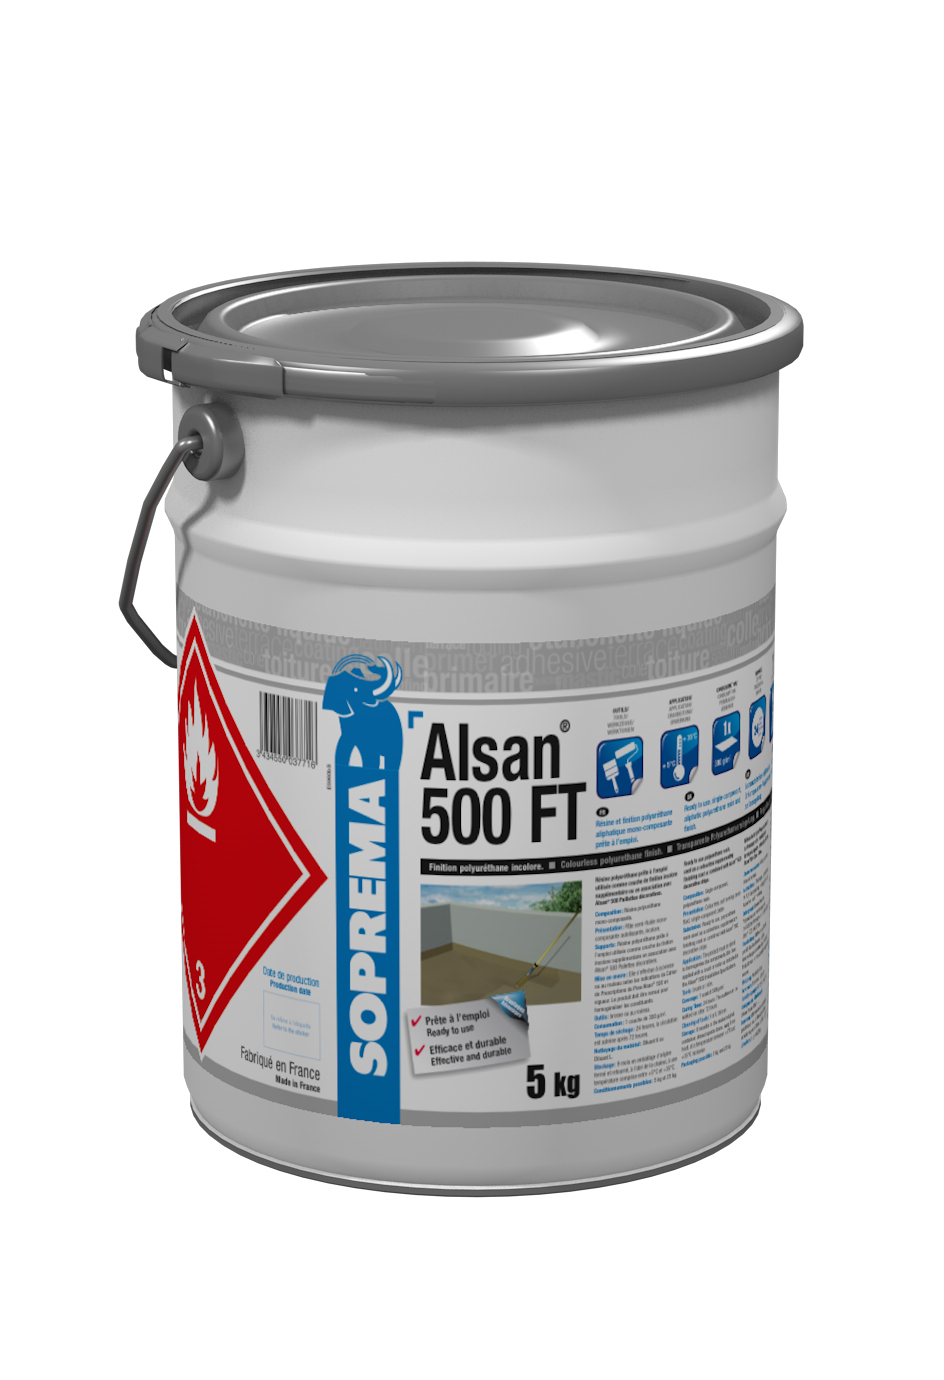 ALSAN 500 FT